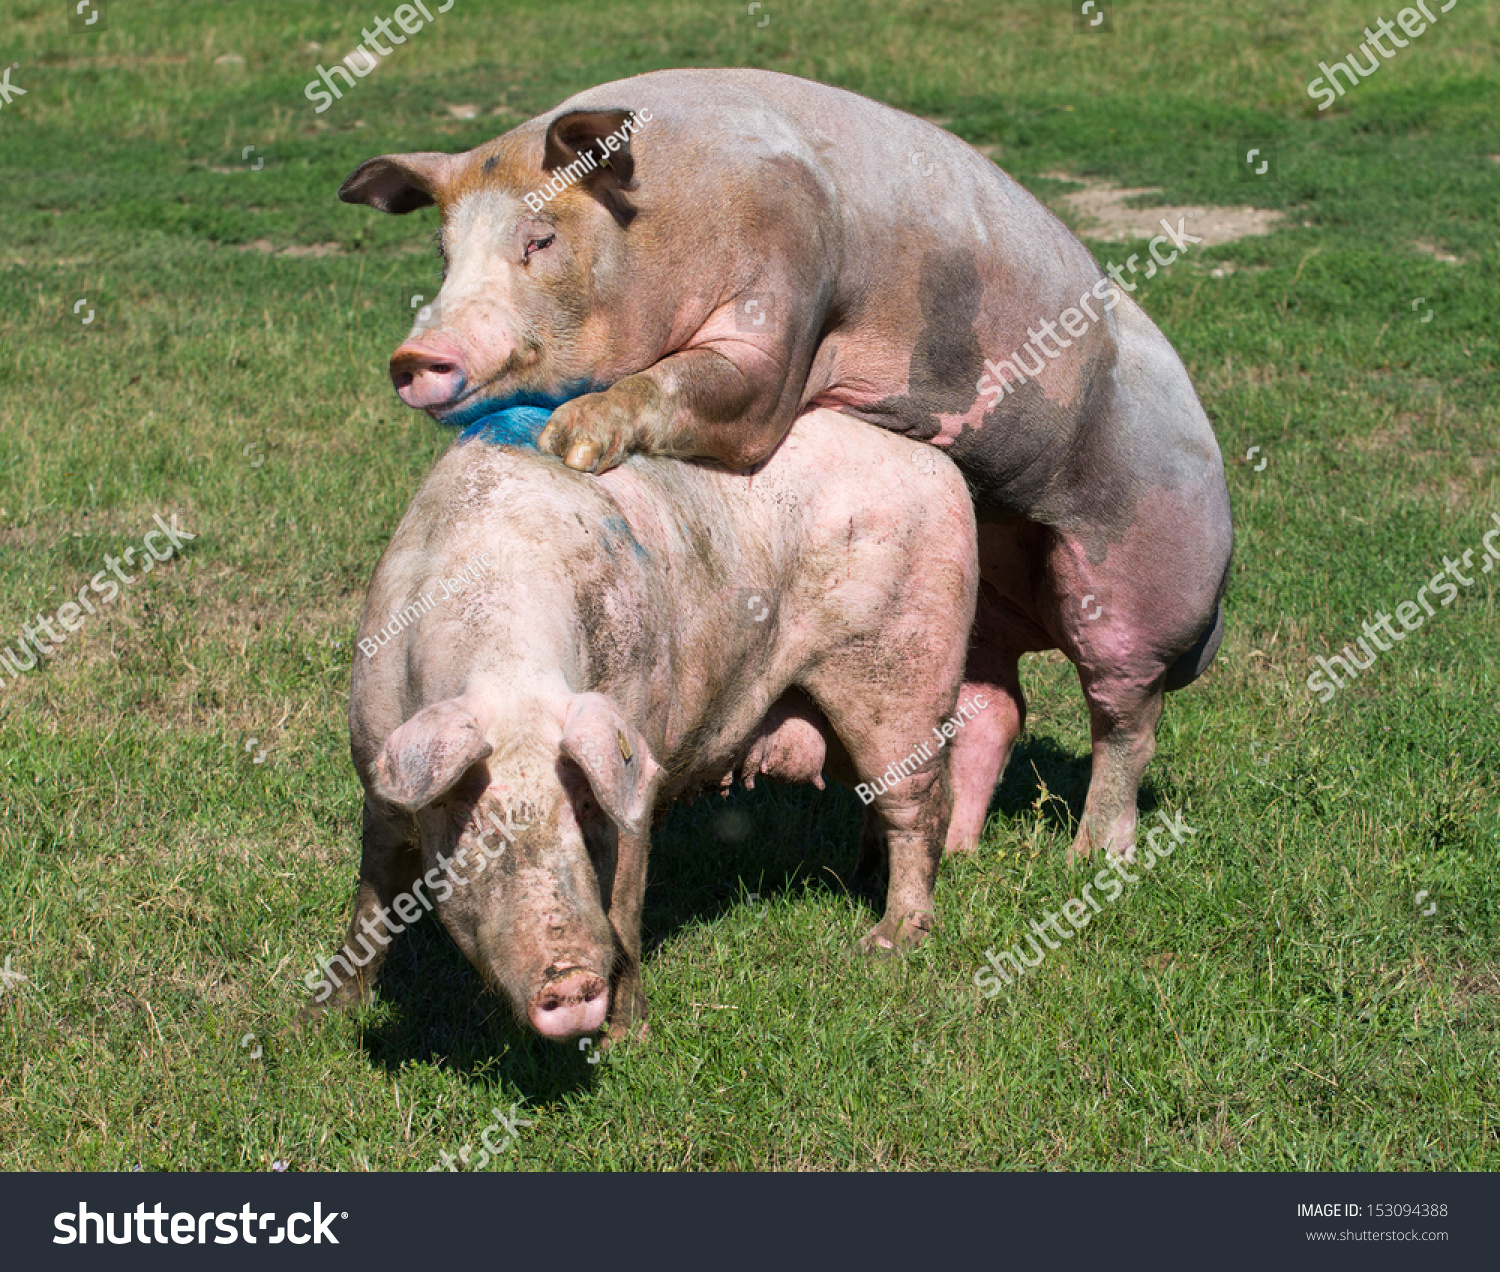 Pig sex photo naked images